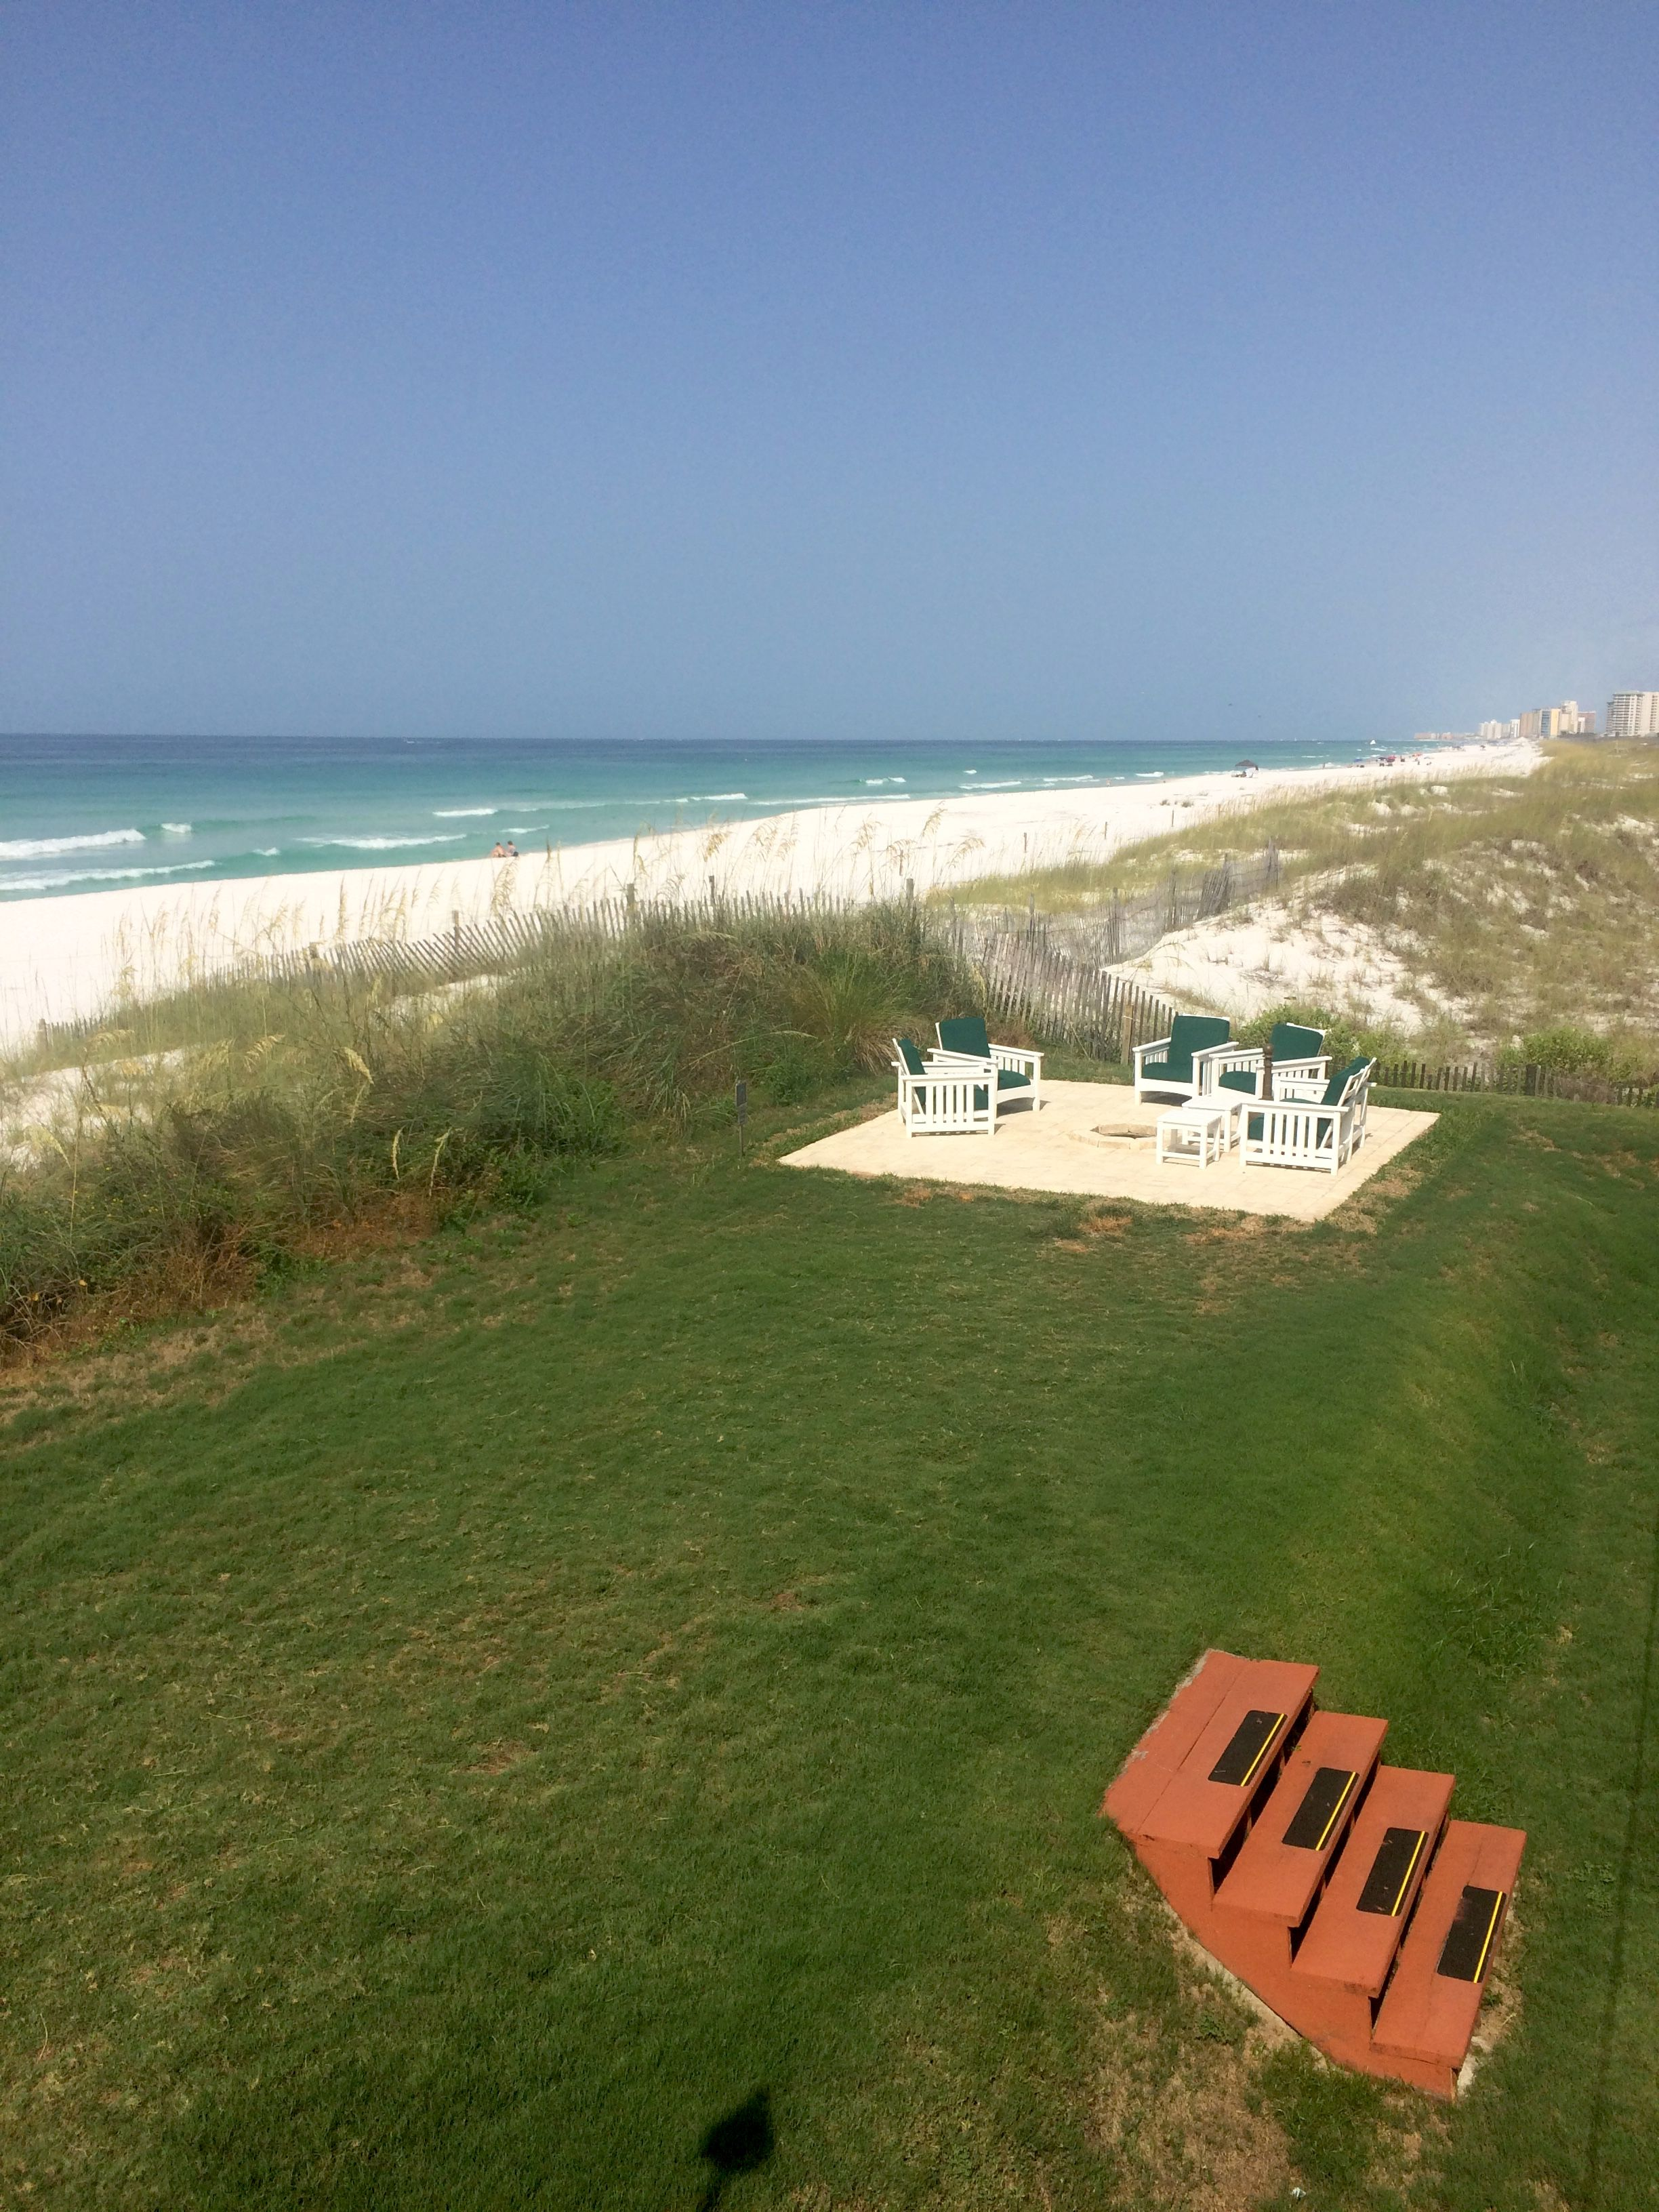 Voted #1 on the List of Best Hotels on the Beach in Destin FL